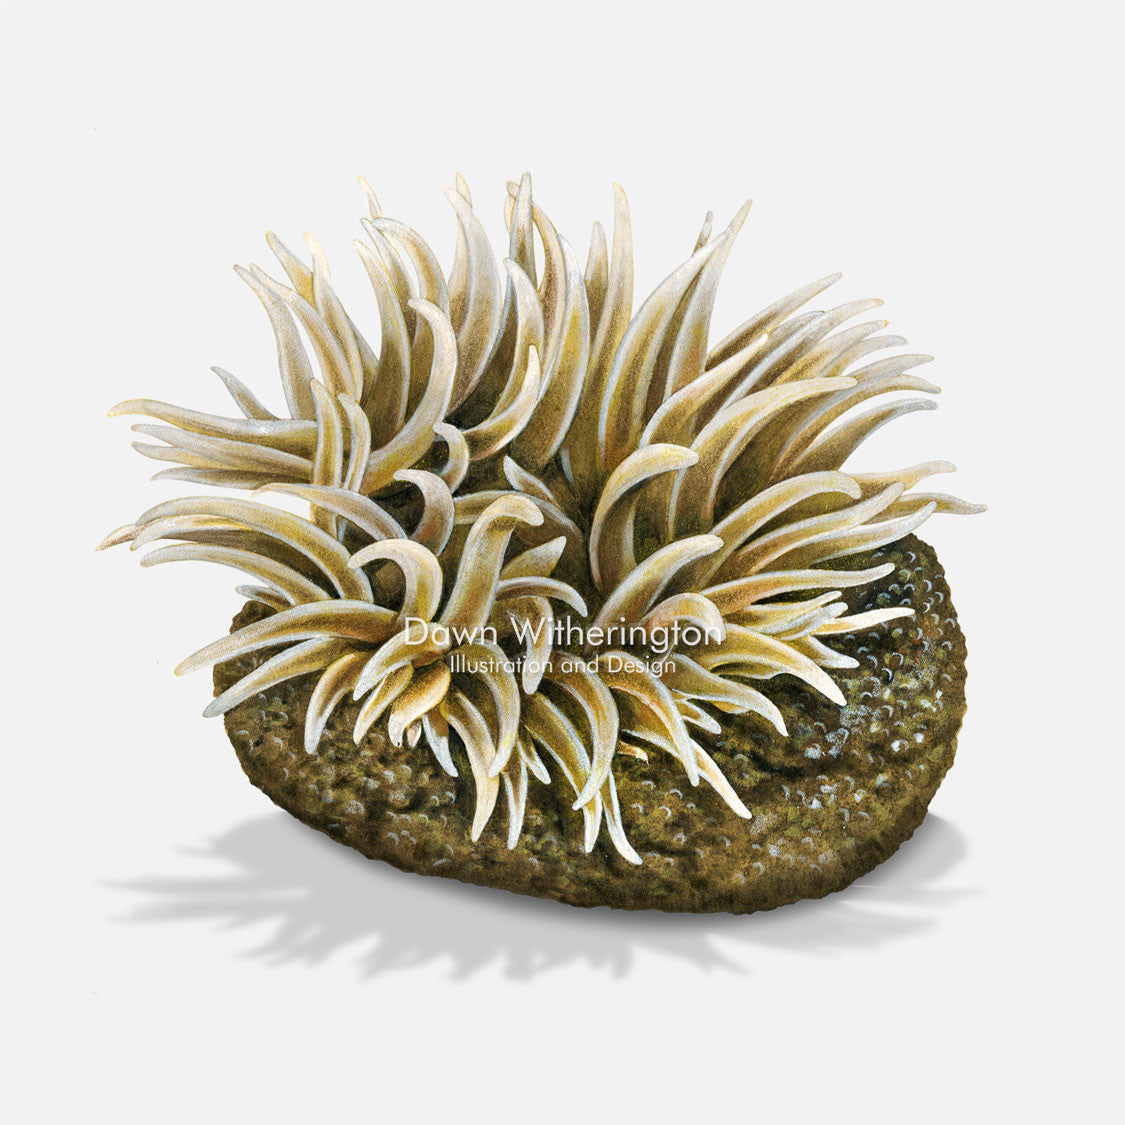 Gray warty anemone